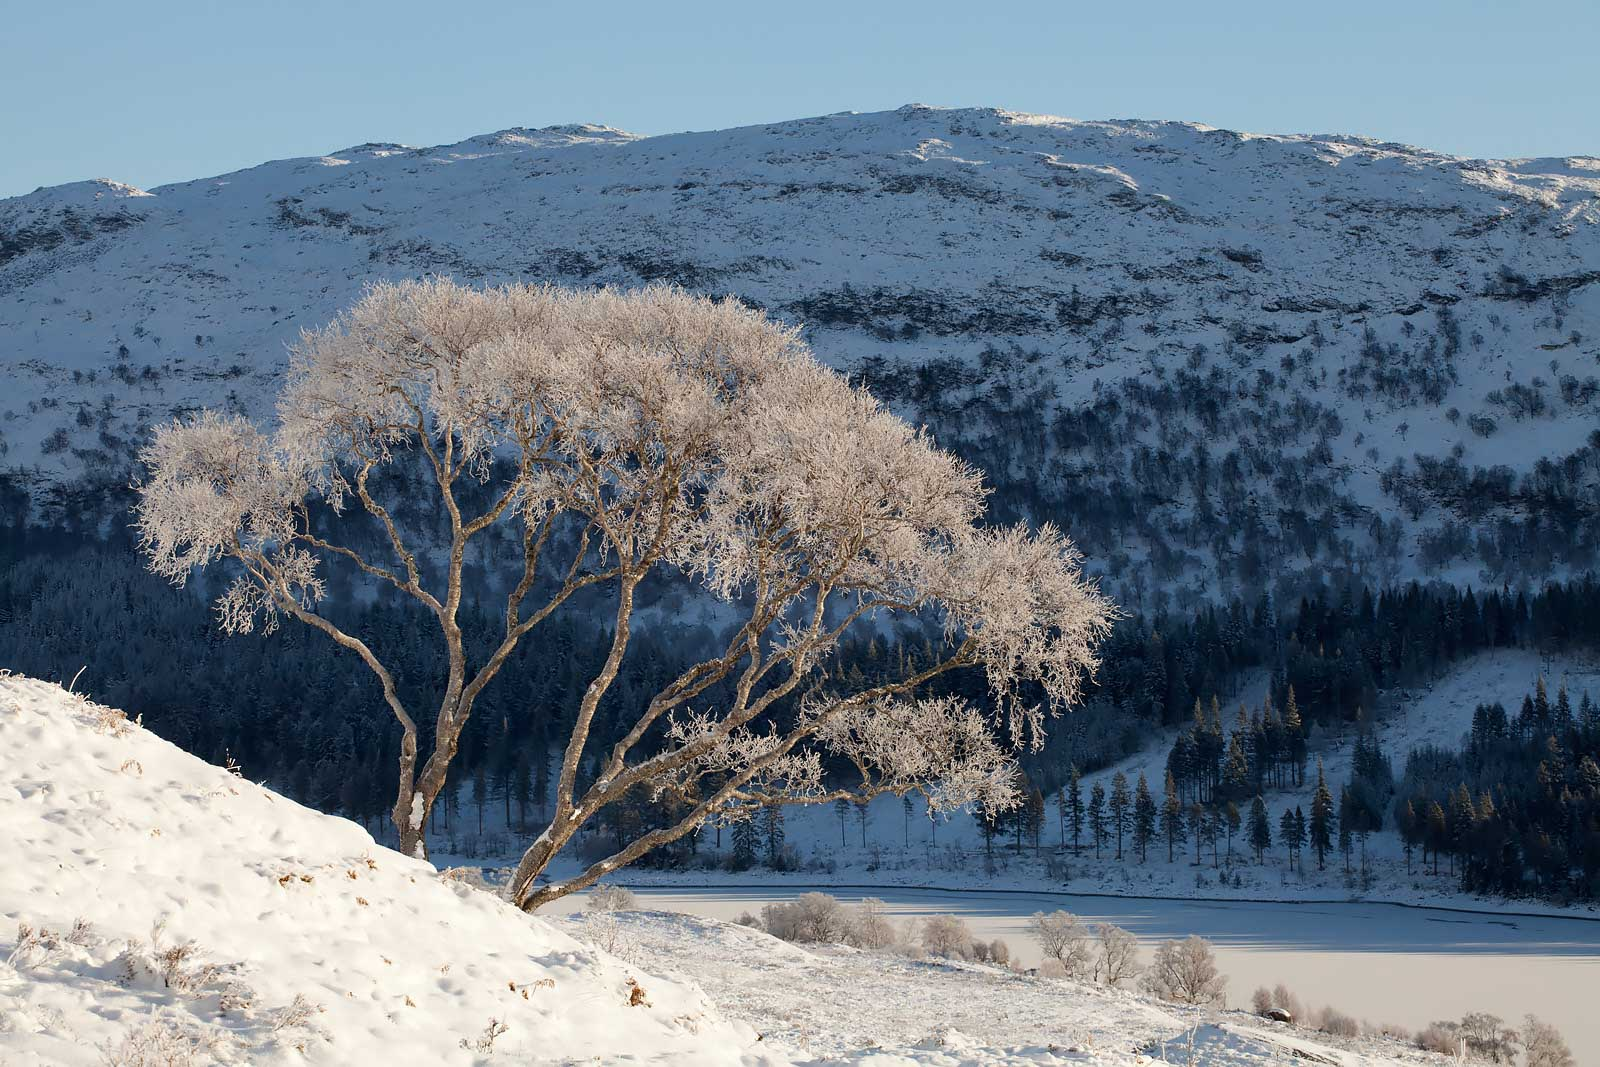 Silver birch (Betula pendula) coated in hoar frost, Creag Meagaidh NNR, Scotland, UK